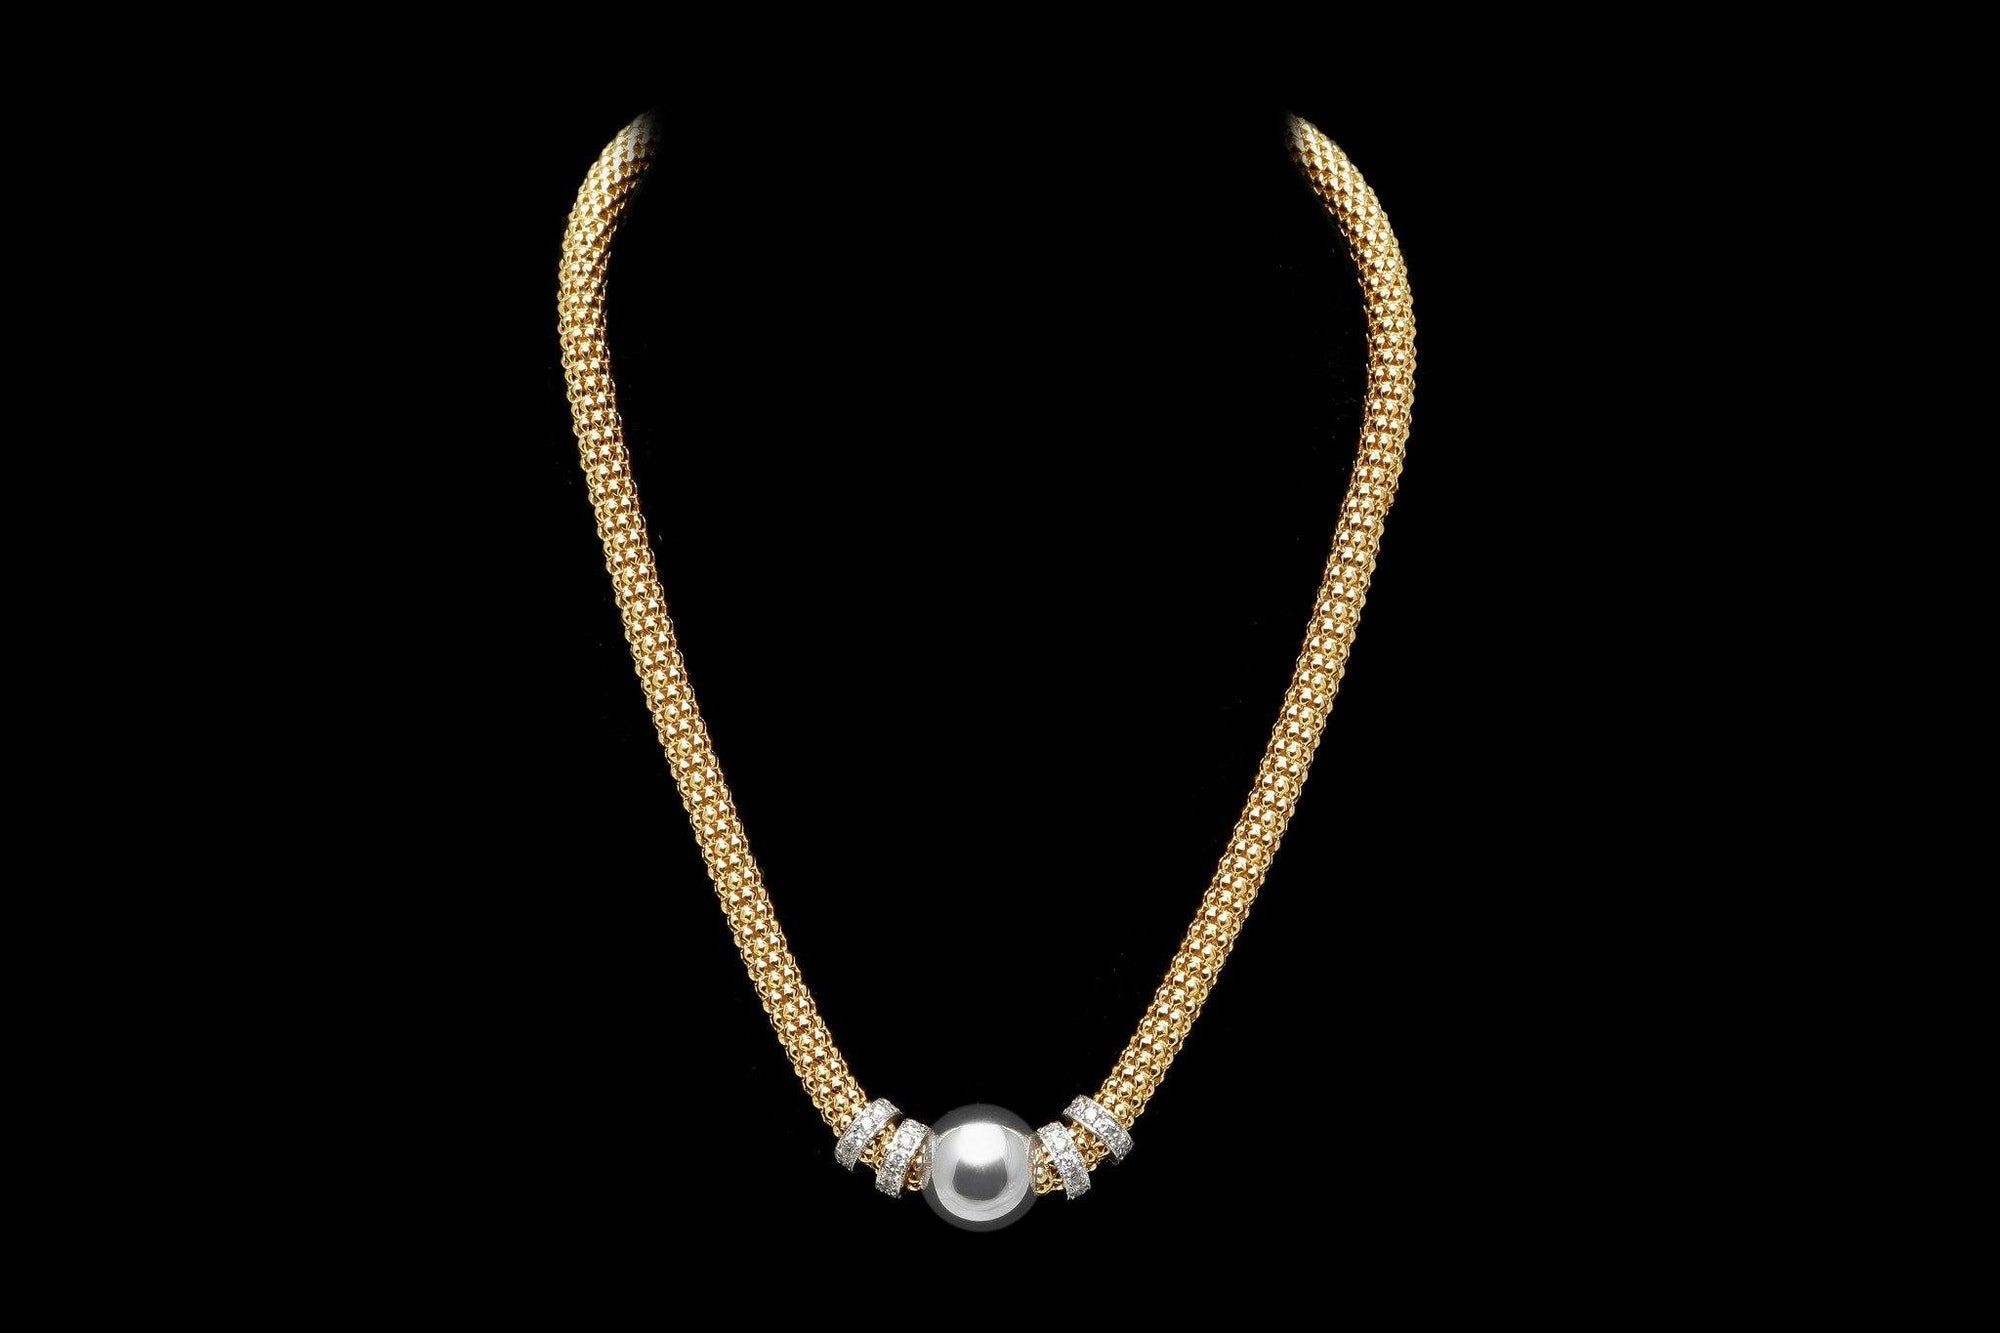 Yellow Gold Plated Silver Beaded NECKLACE with multiple Rows of Cubic Zirconia Rings  - Ceilo Milan - Ninostyle